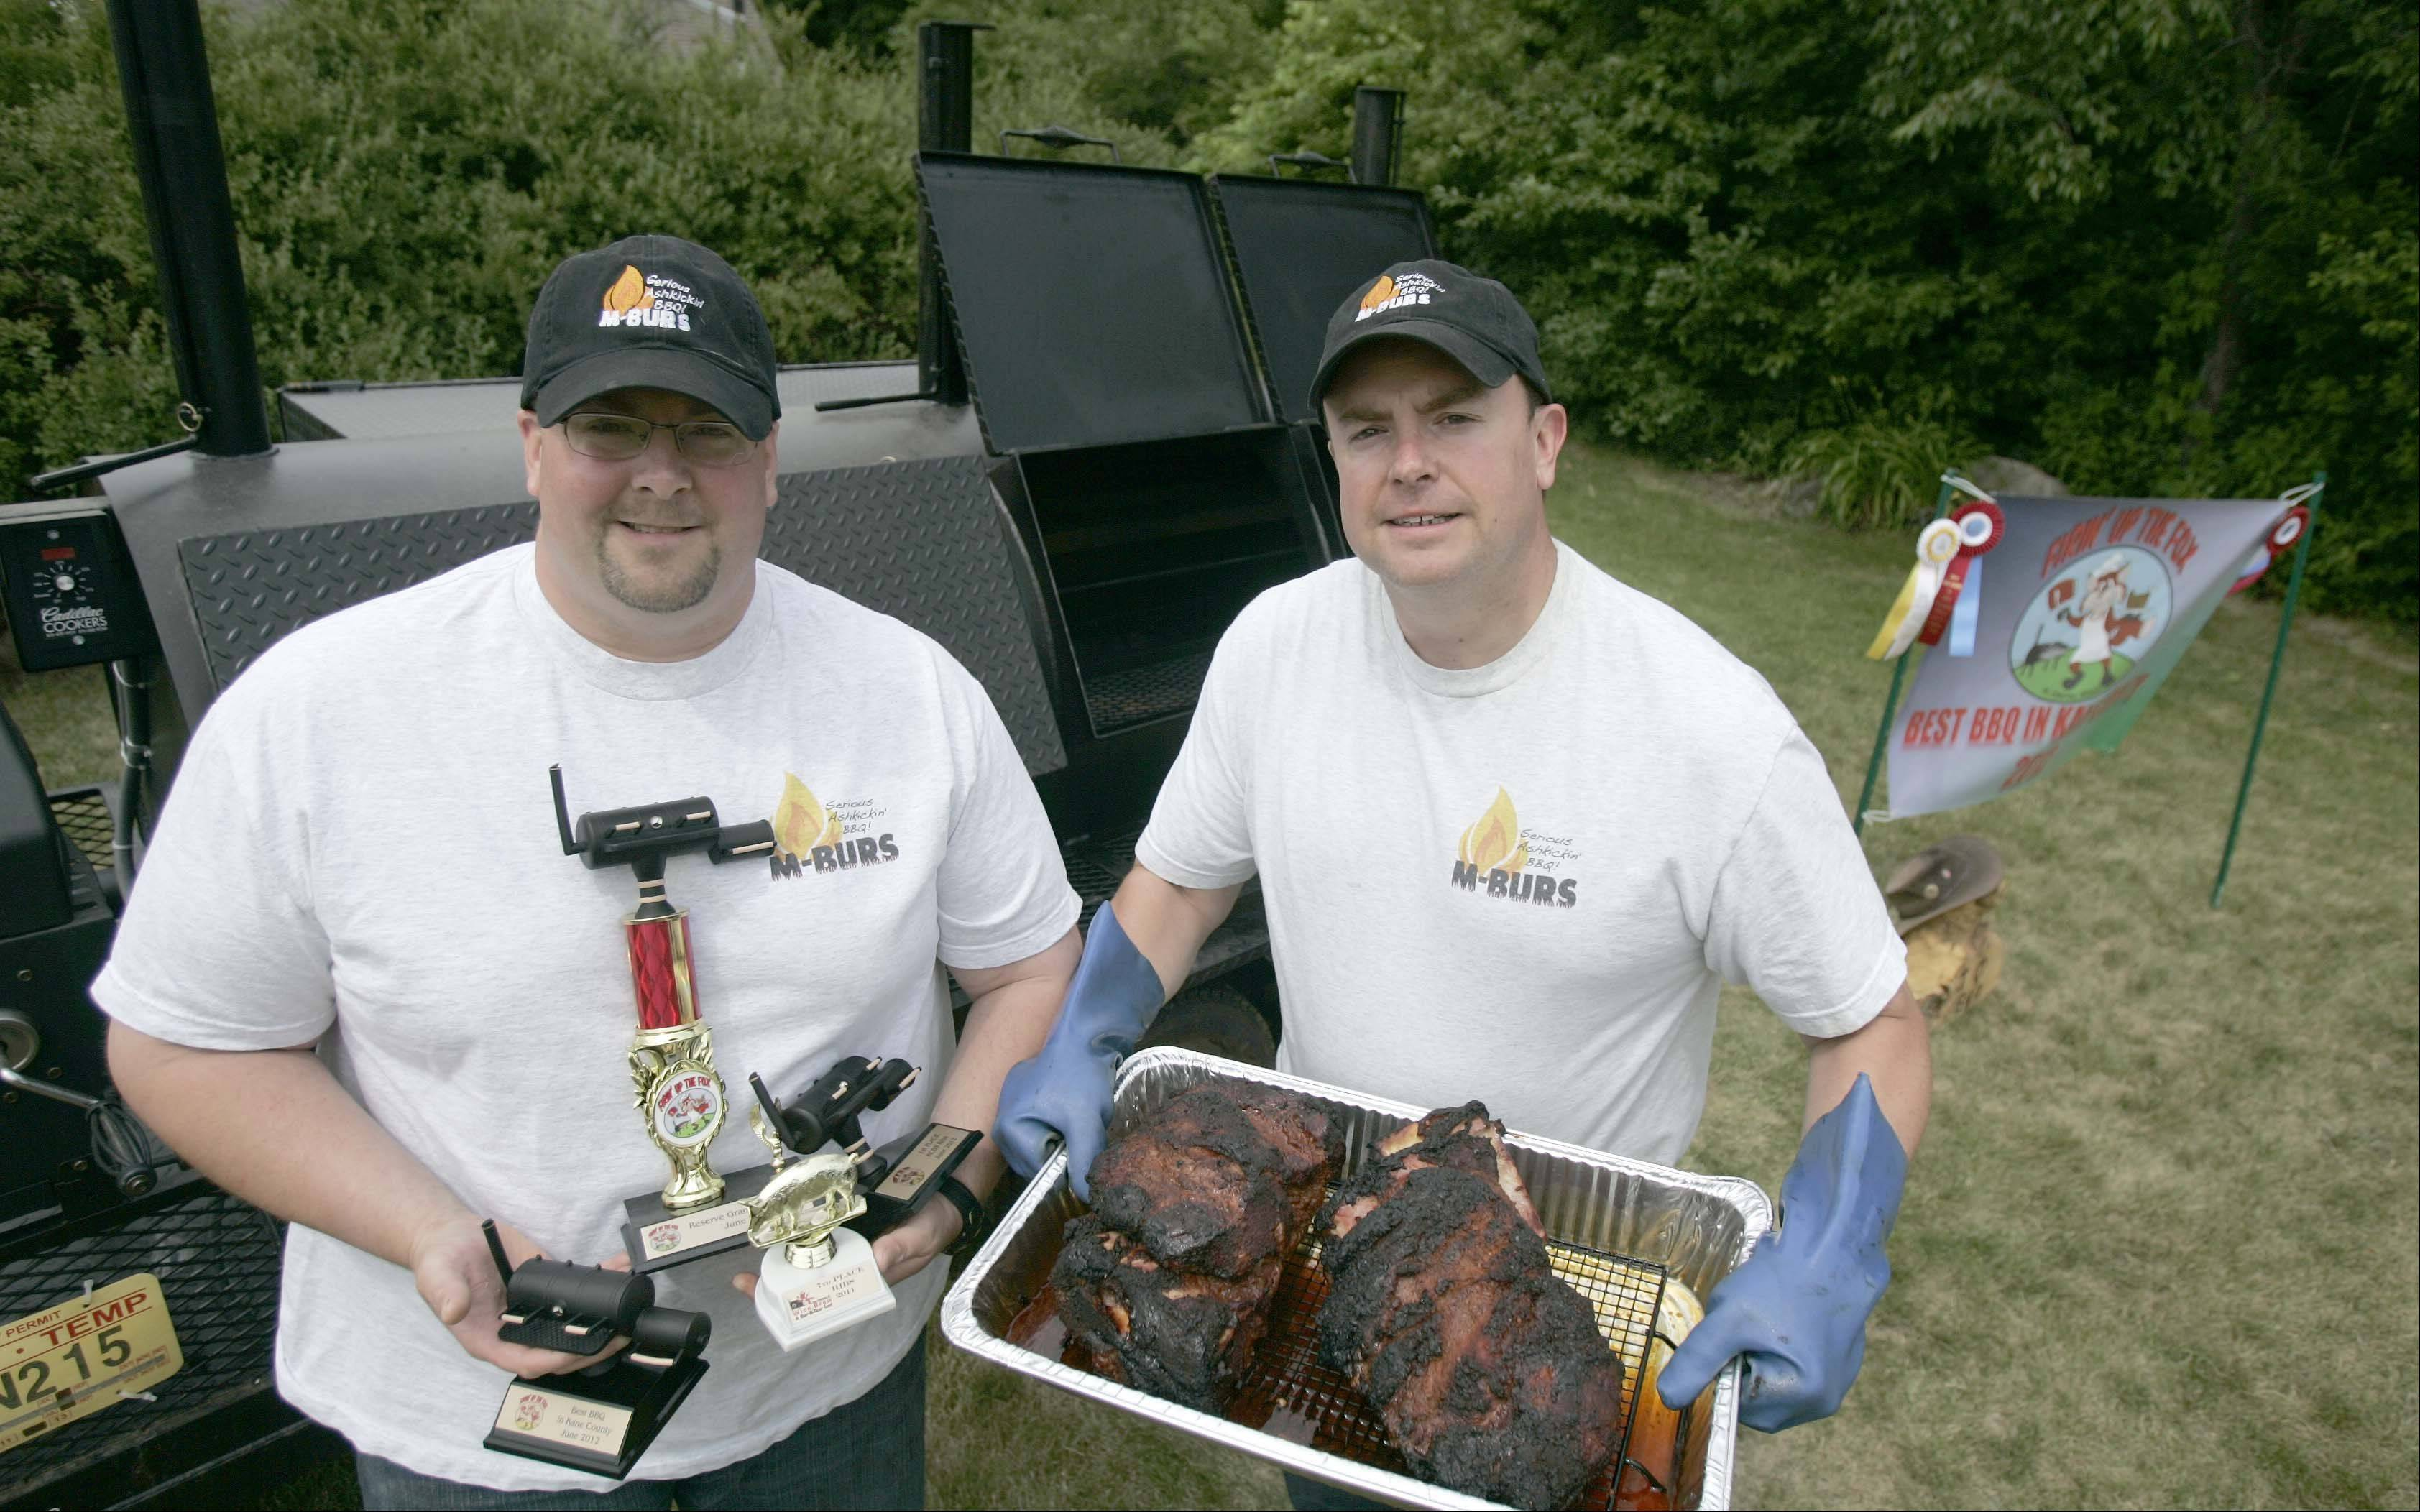 Brothers Marty, left, and Matt Burton of St. Charles won the Best Barbecue in Kane County title at the St. Charles Riverfest. The pair took first in ribs, second in brisket, fourth in pork, fifth in side dish and the Reserve Grand Champion for the Kansas City Barbecue Society. This was only the second time they had competed with their custom built barbecue/smoker.